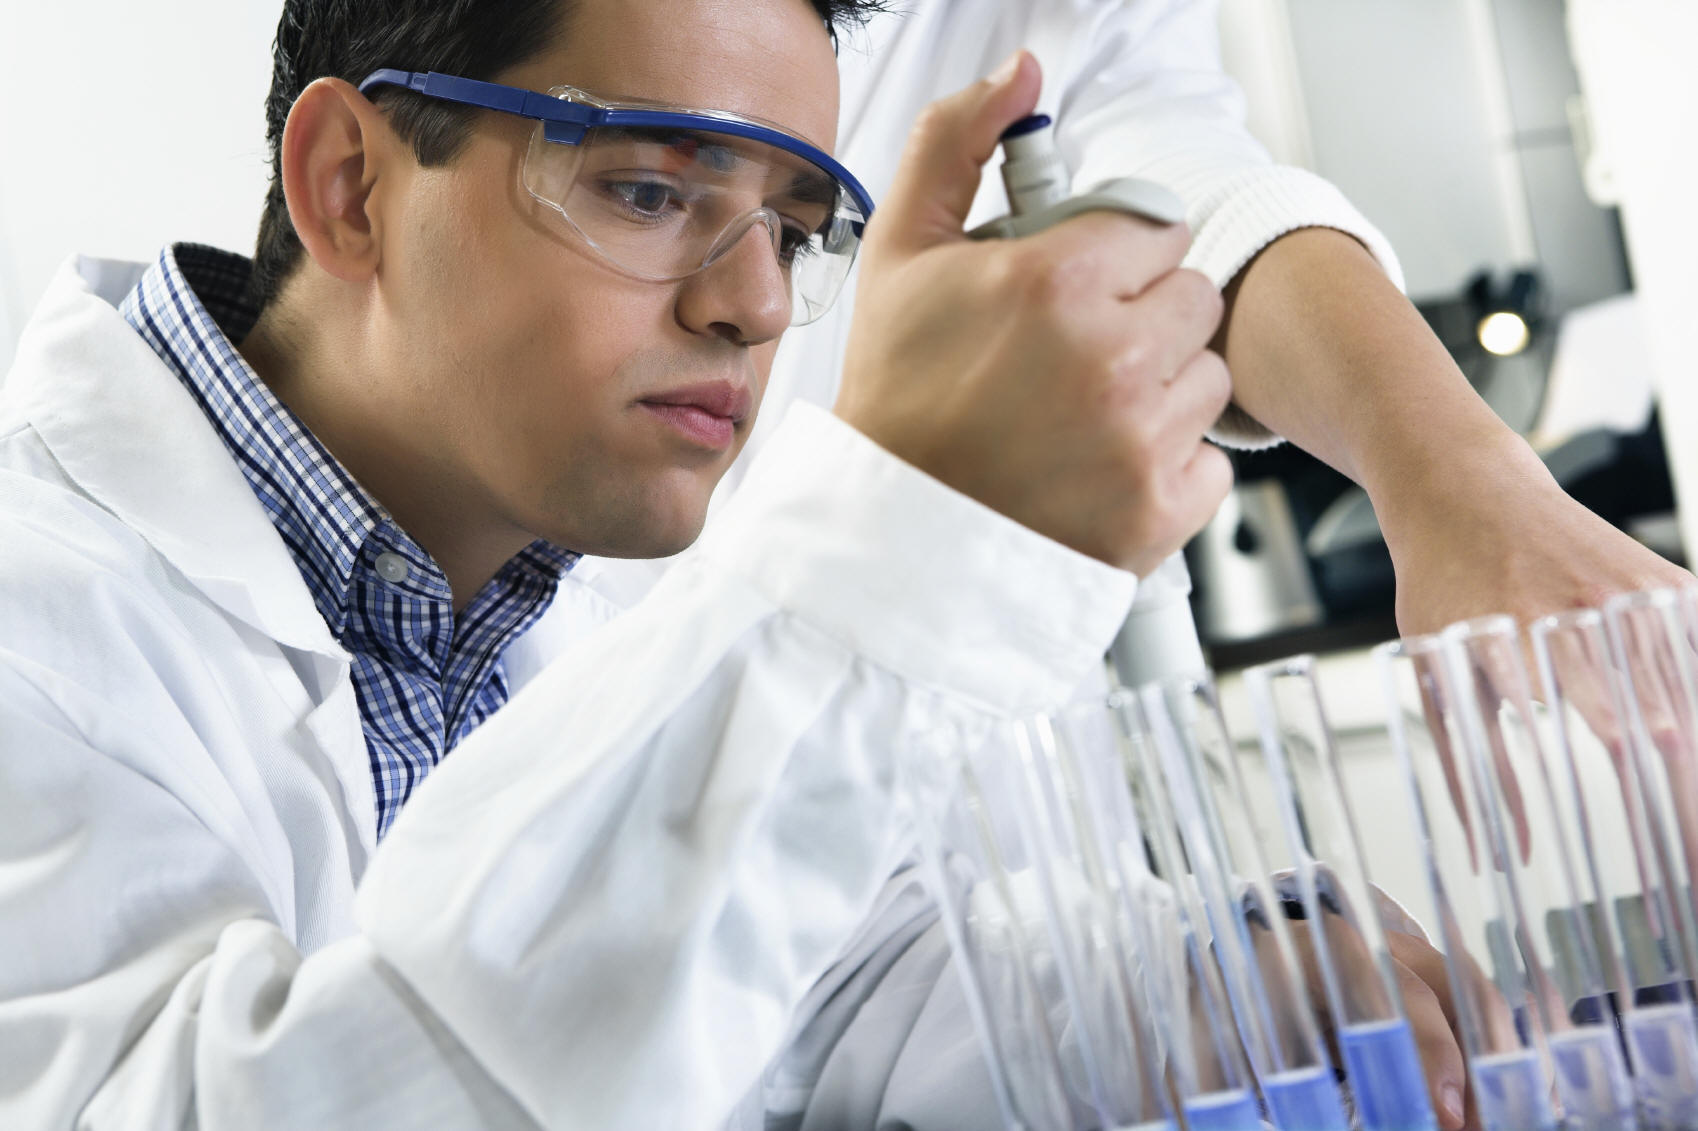 Analytical Chemist in the Laboratory